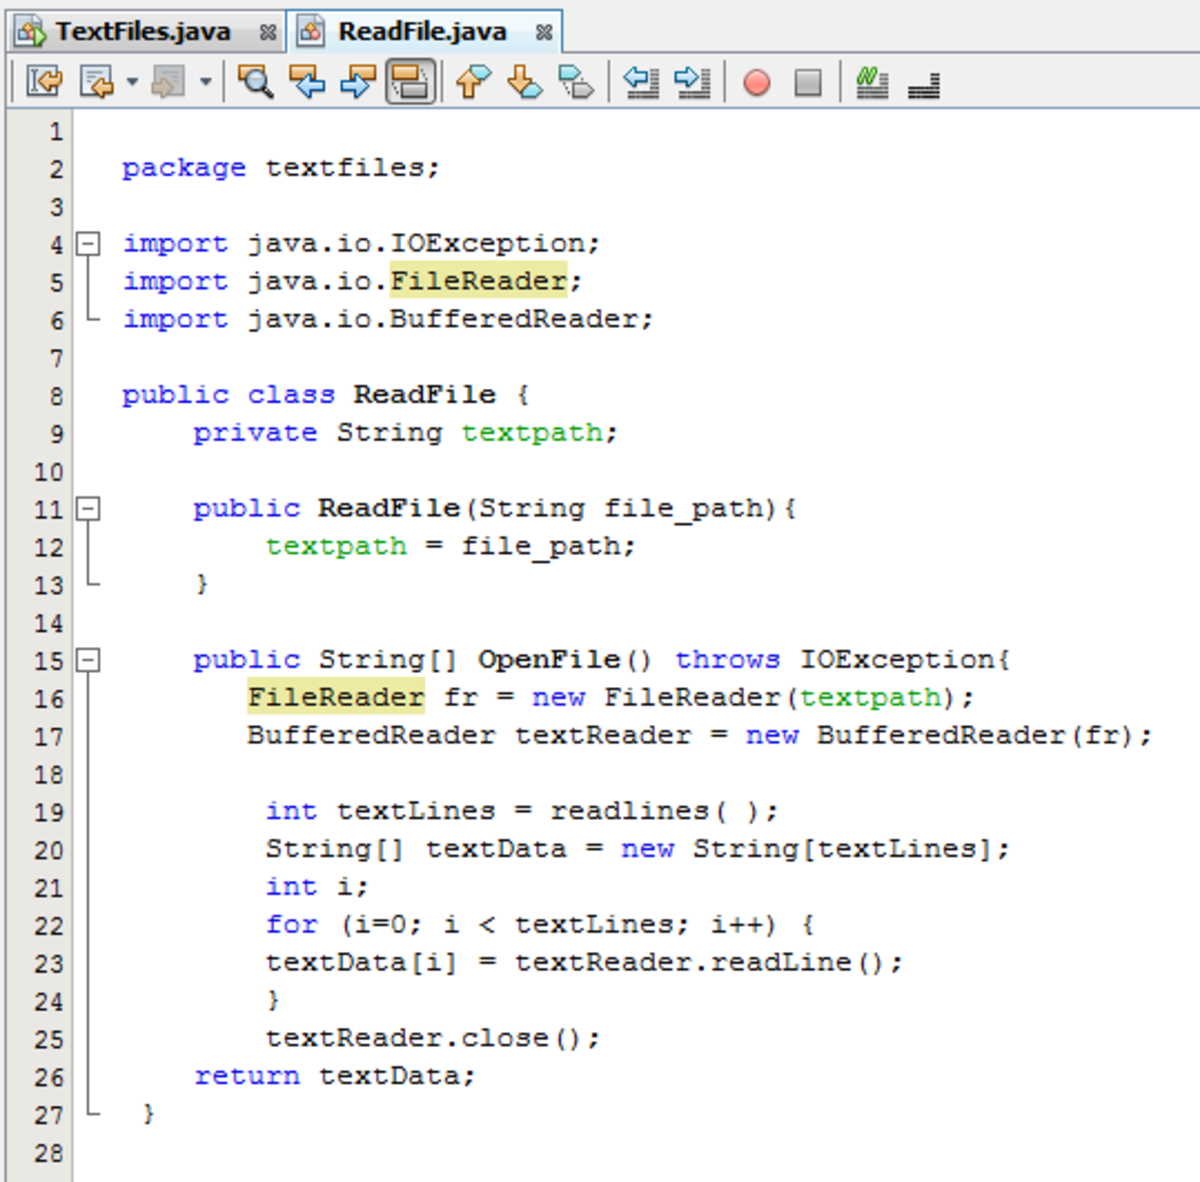 programming-in-java-netbeans-a-step-by-step-tutorial-for-beginners-lesson-34